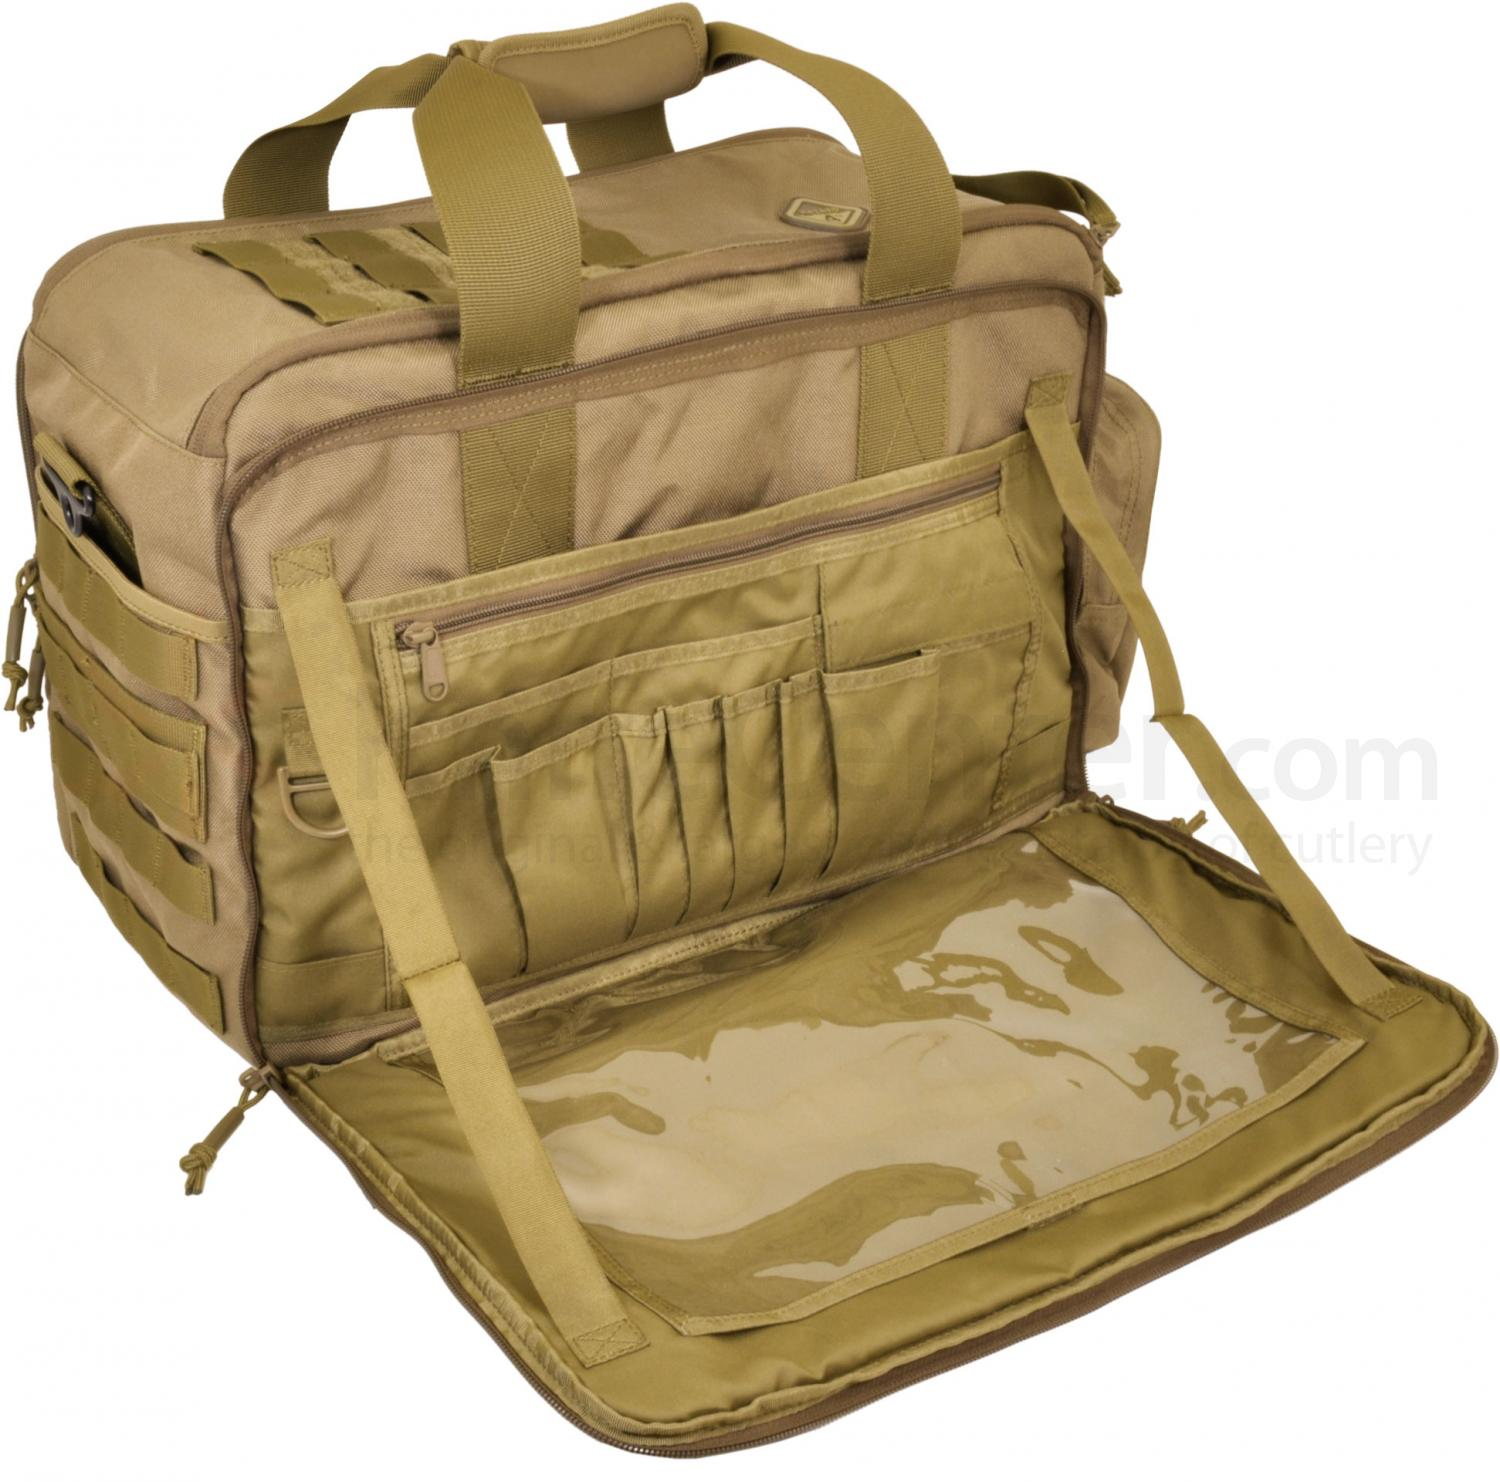 Hazard 4 Spotter Dividable Range Bag, Coyote